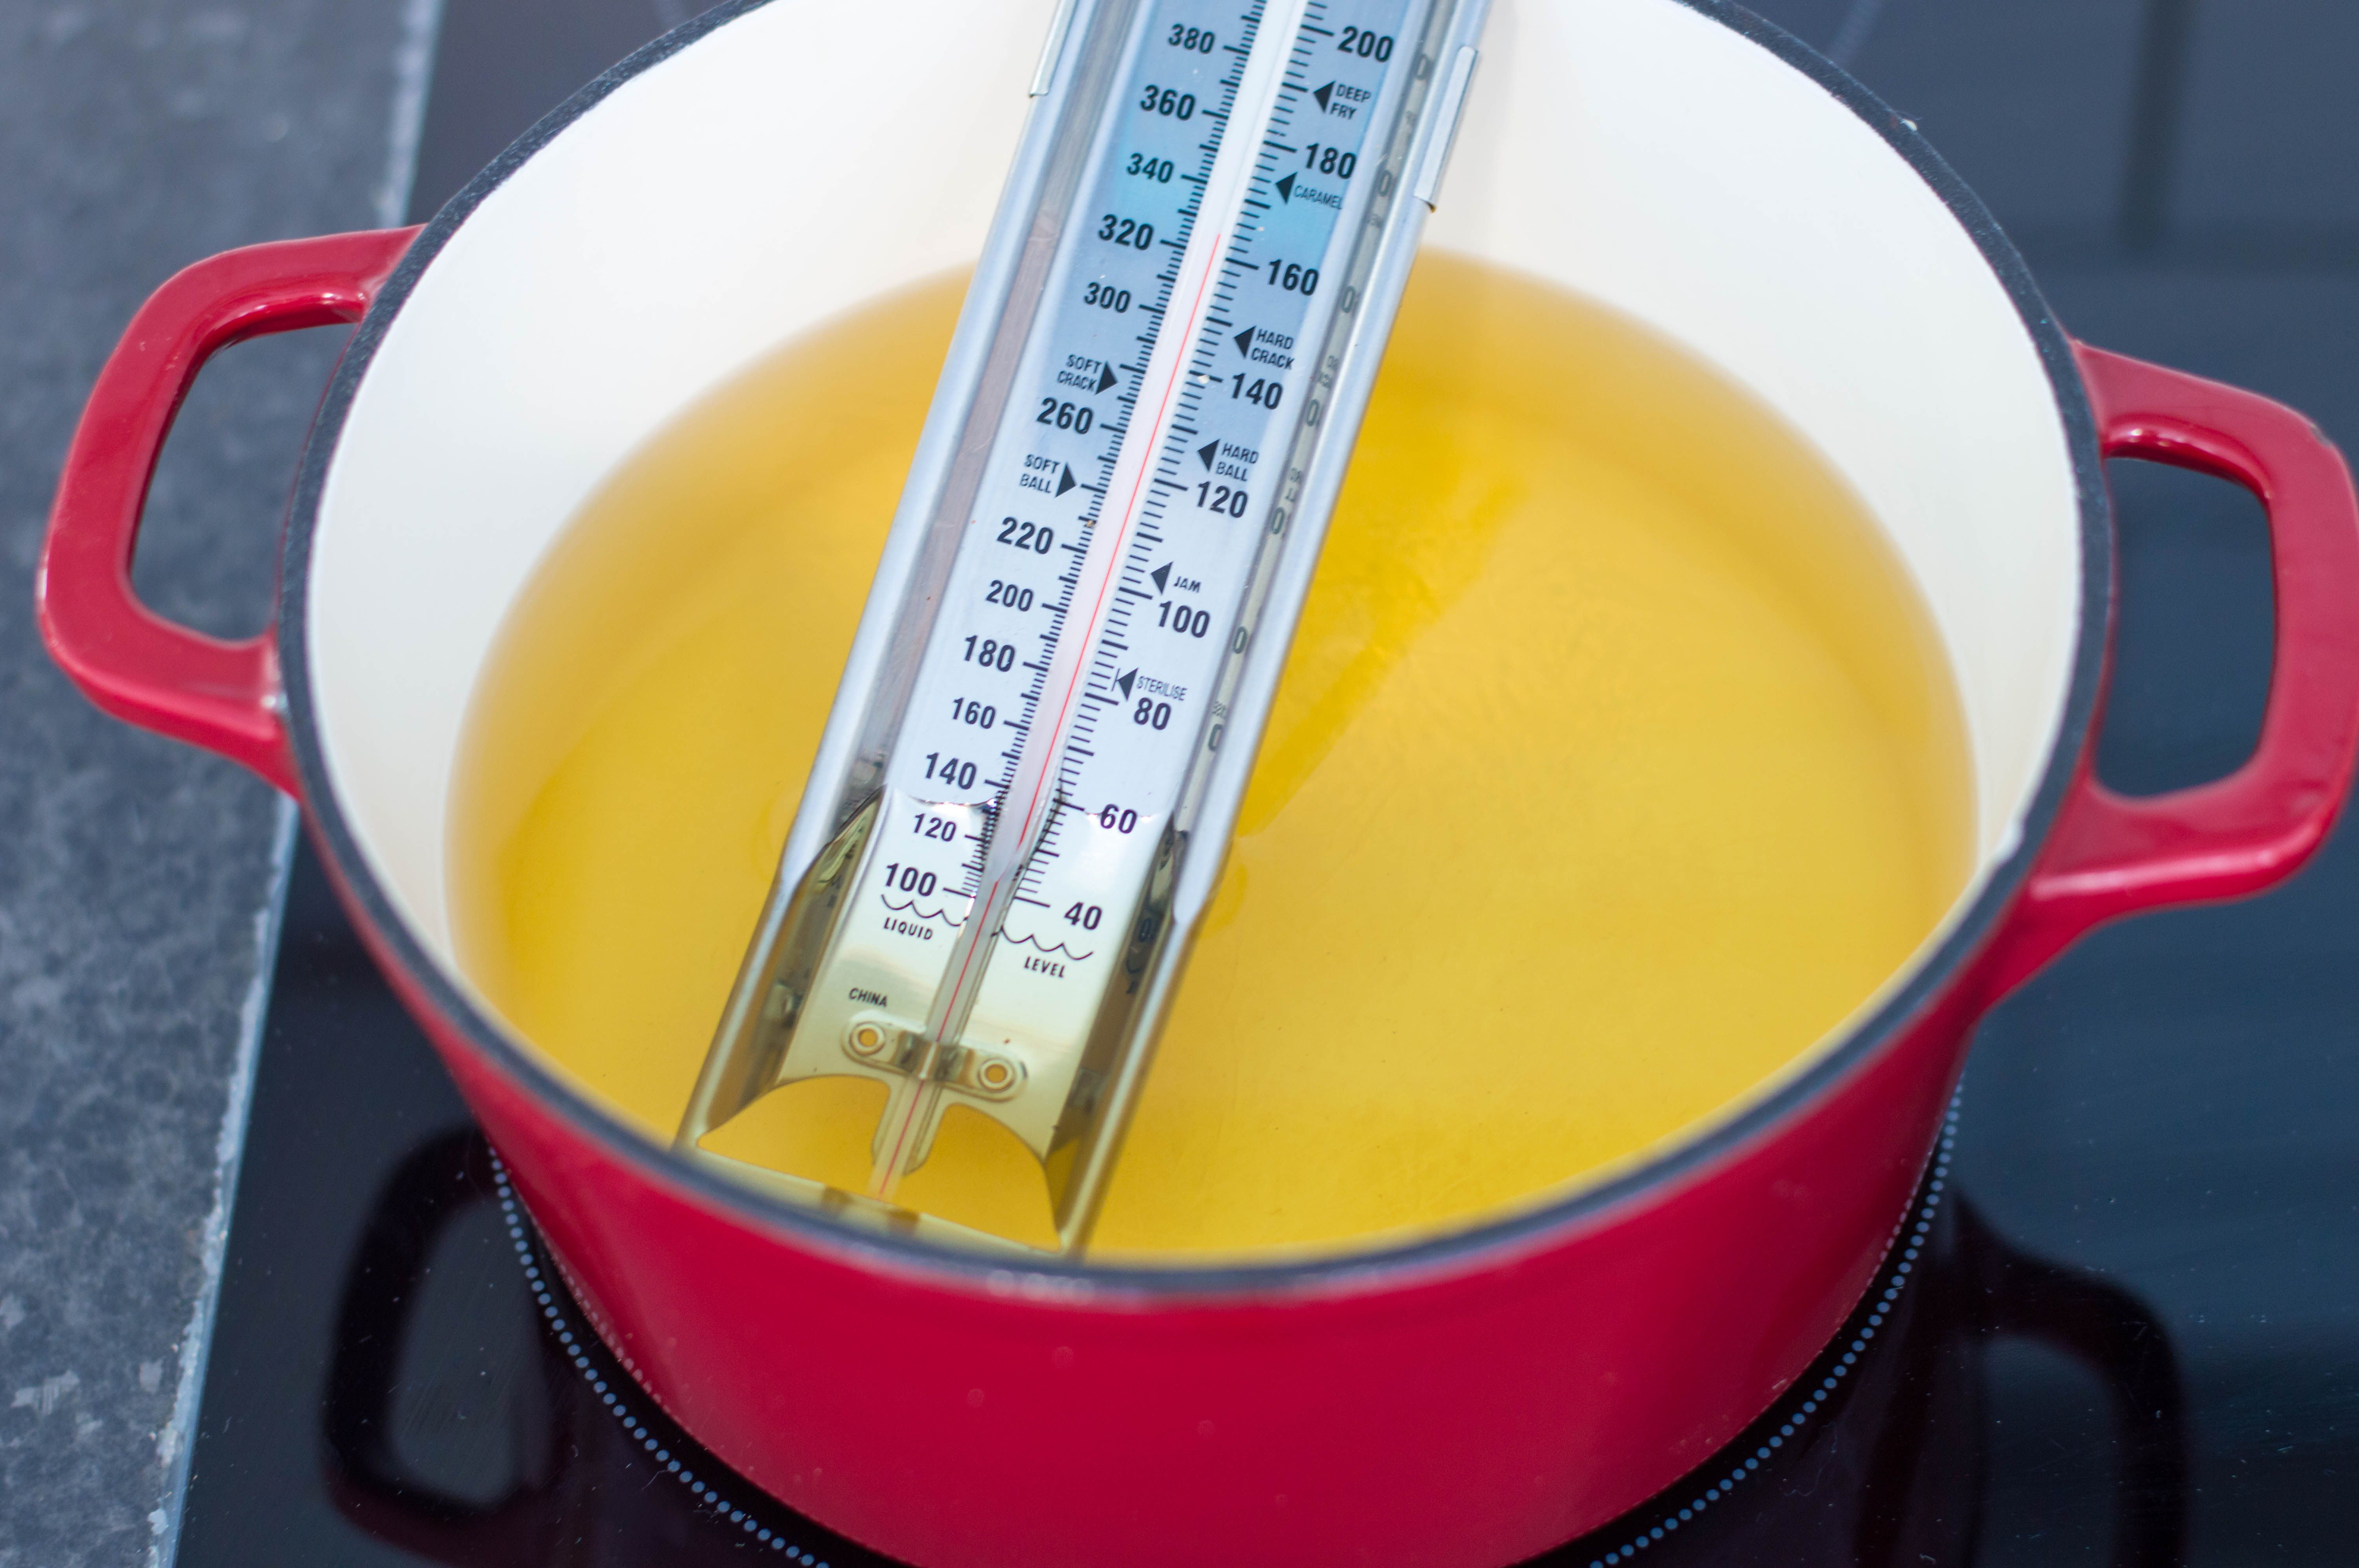 Taking the temperature of the vegetable oil